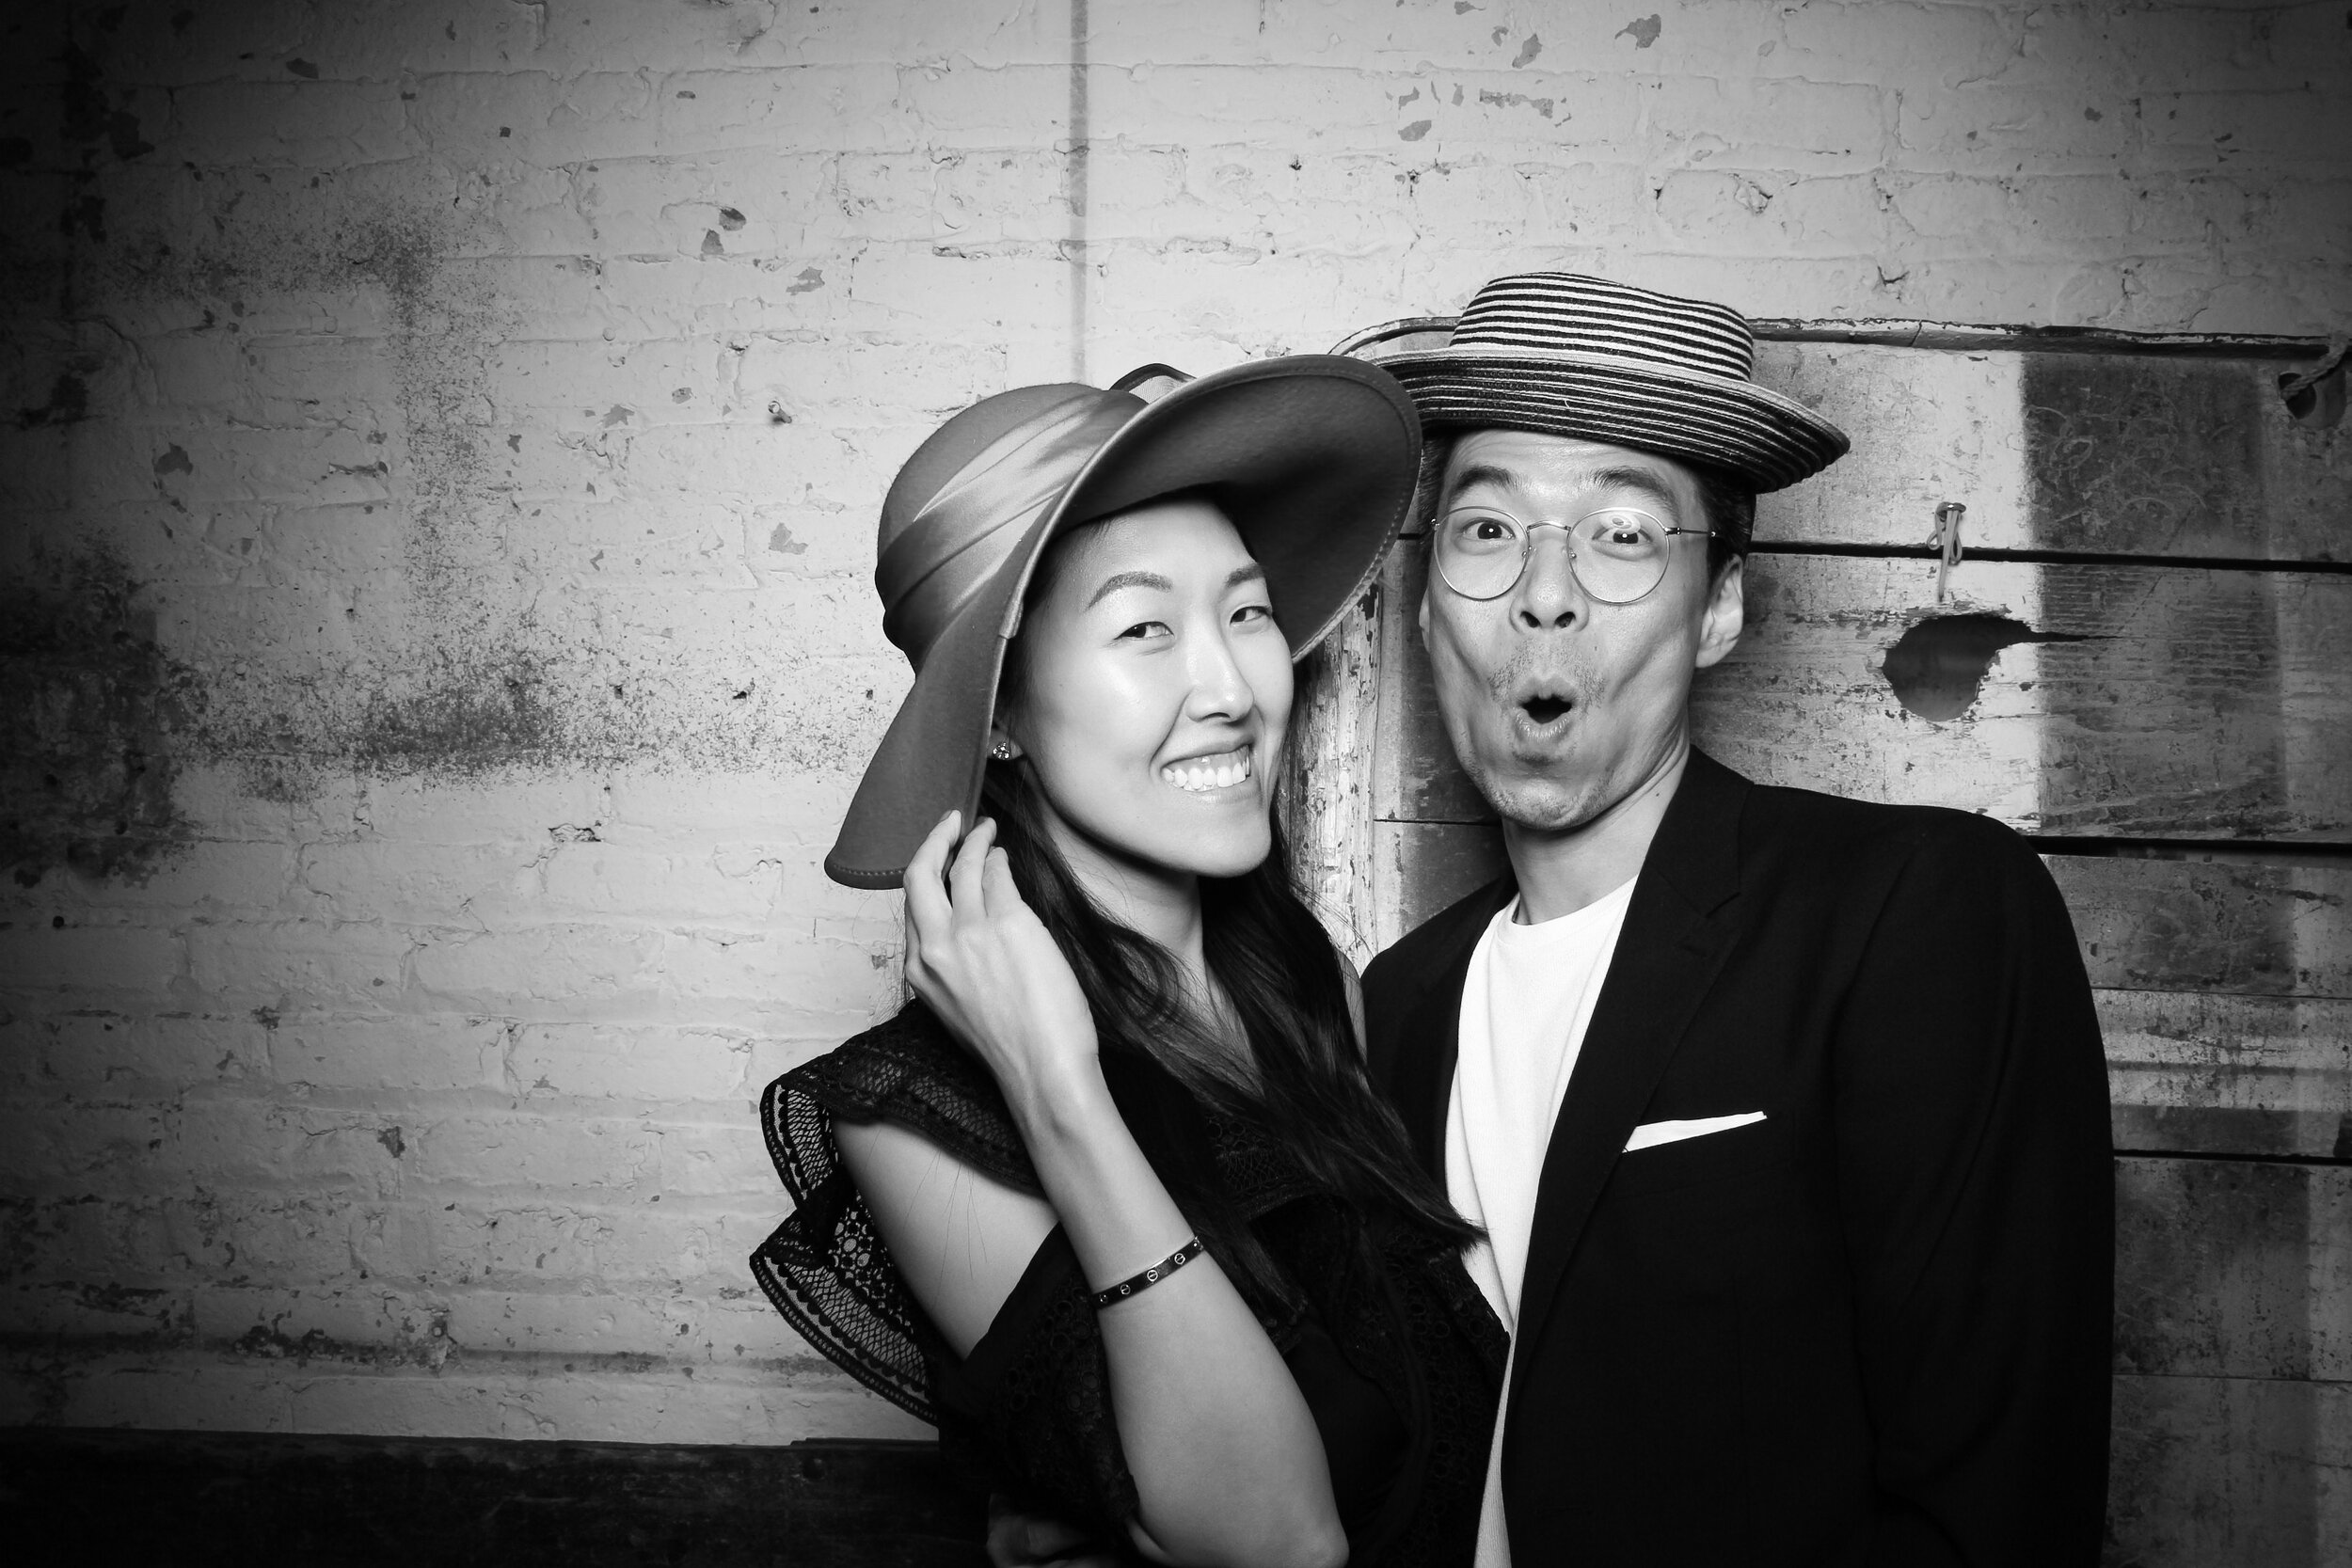 Chicago_Vintage_Wedding_Photobooth_Joinery_13.jpg